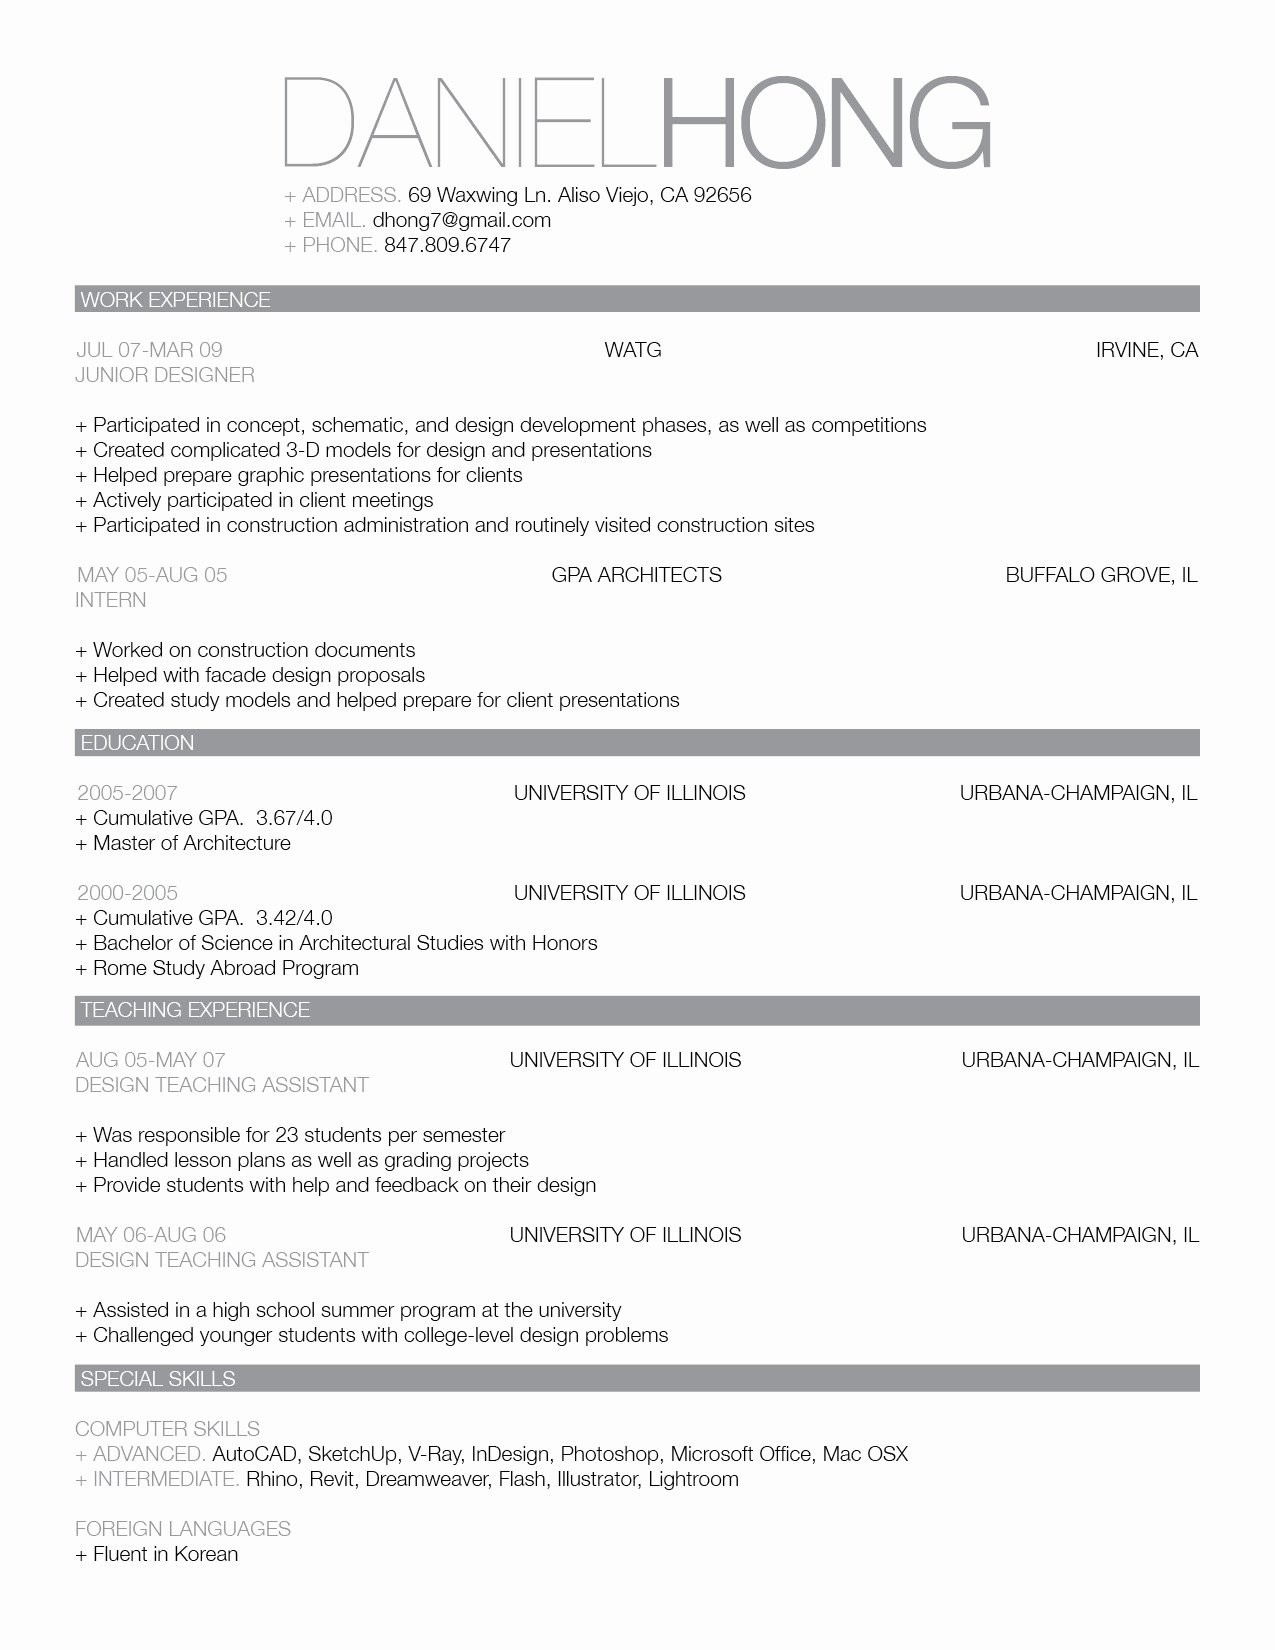 Your Guide to the Best Free Resume Templates